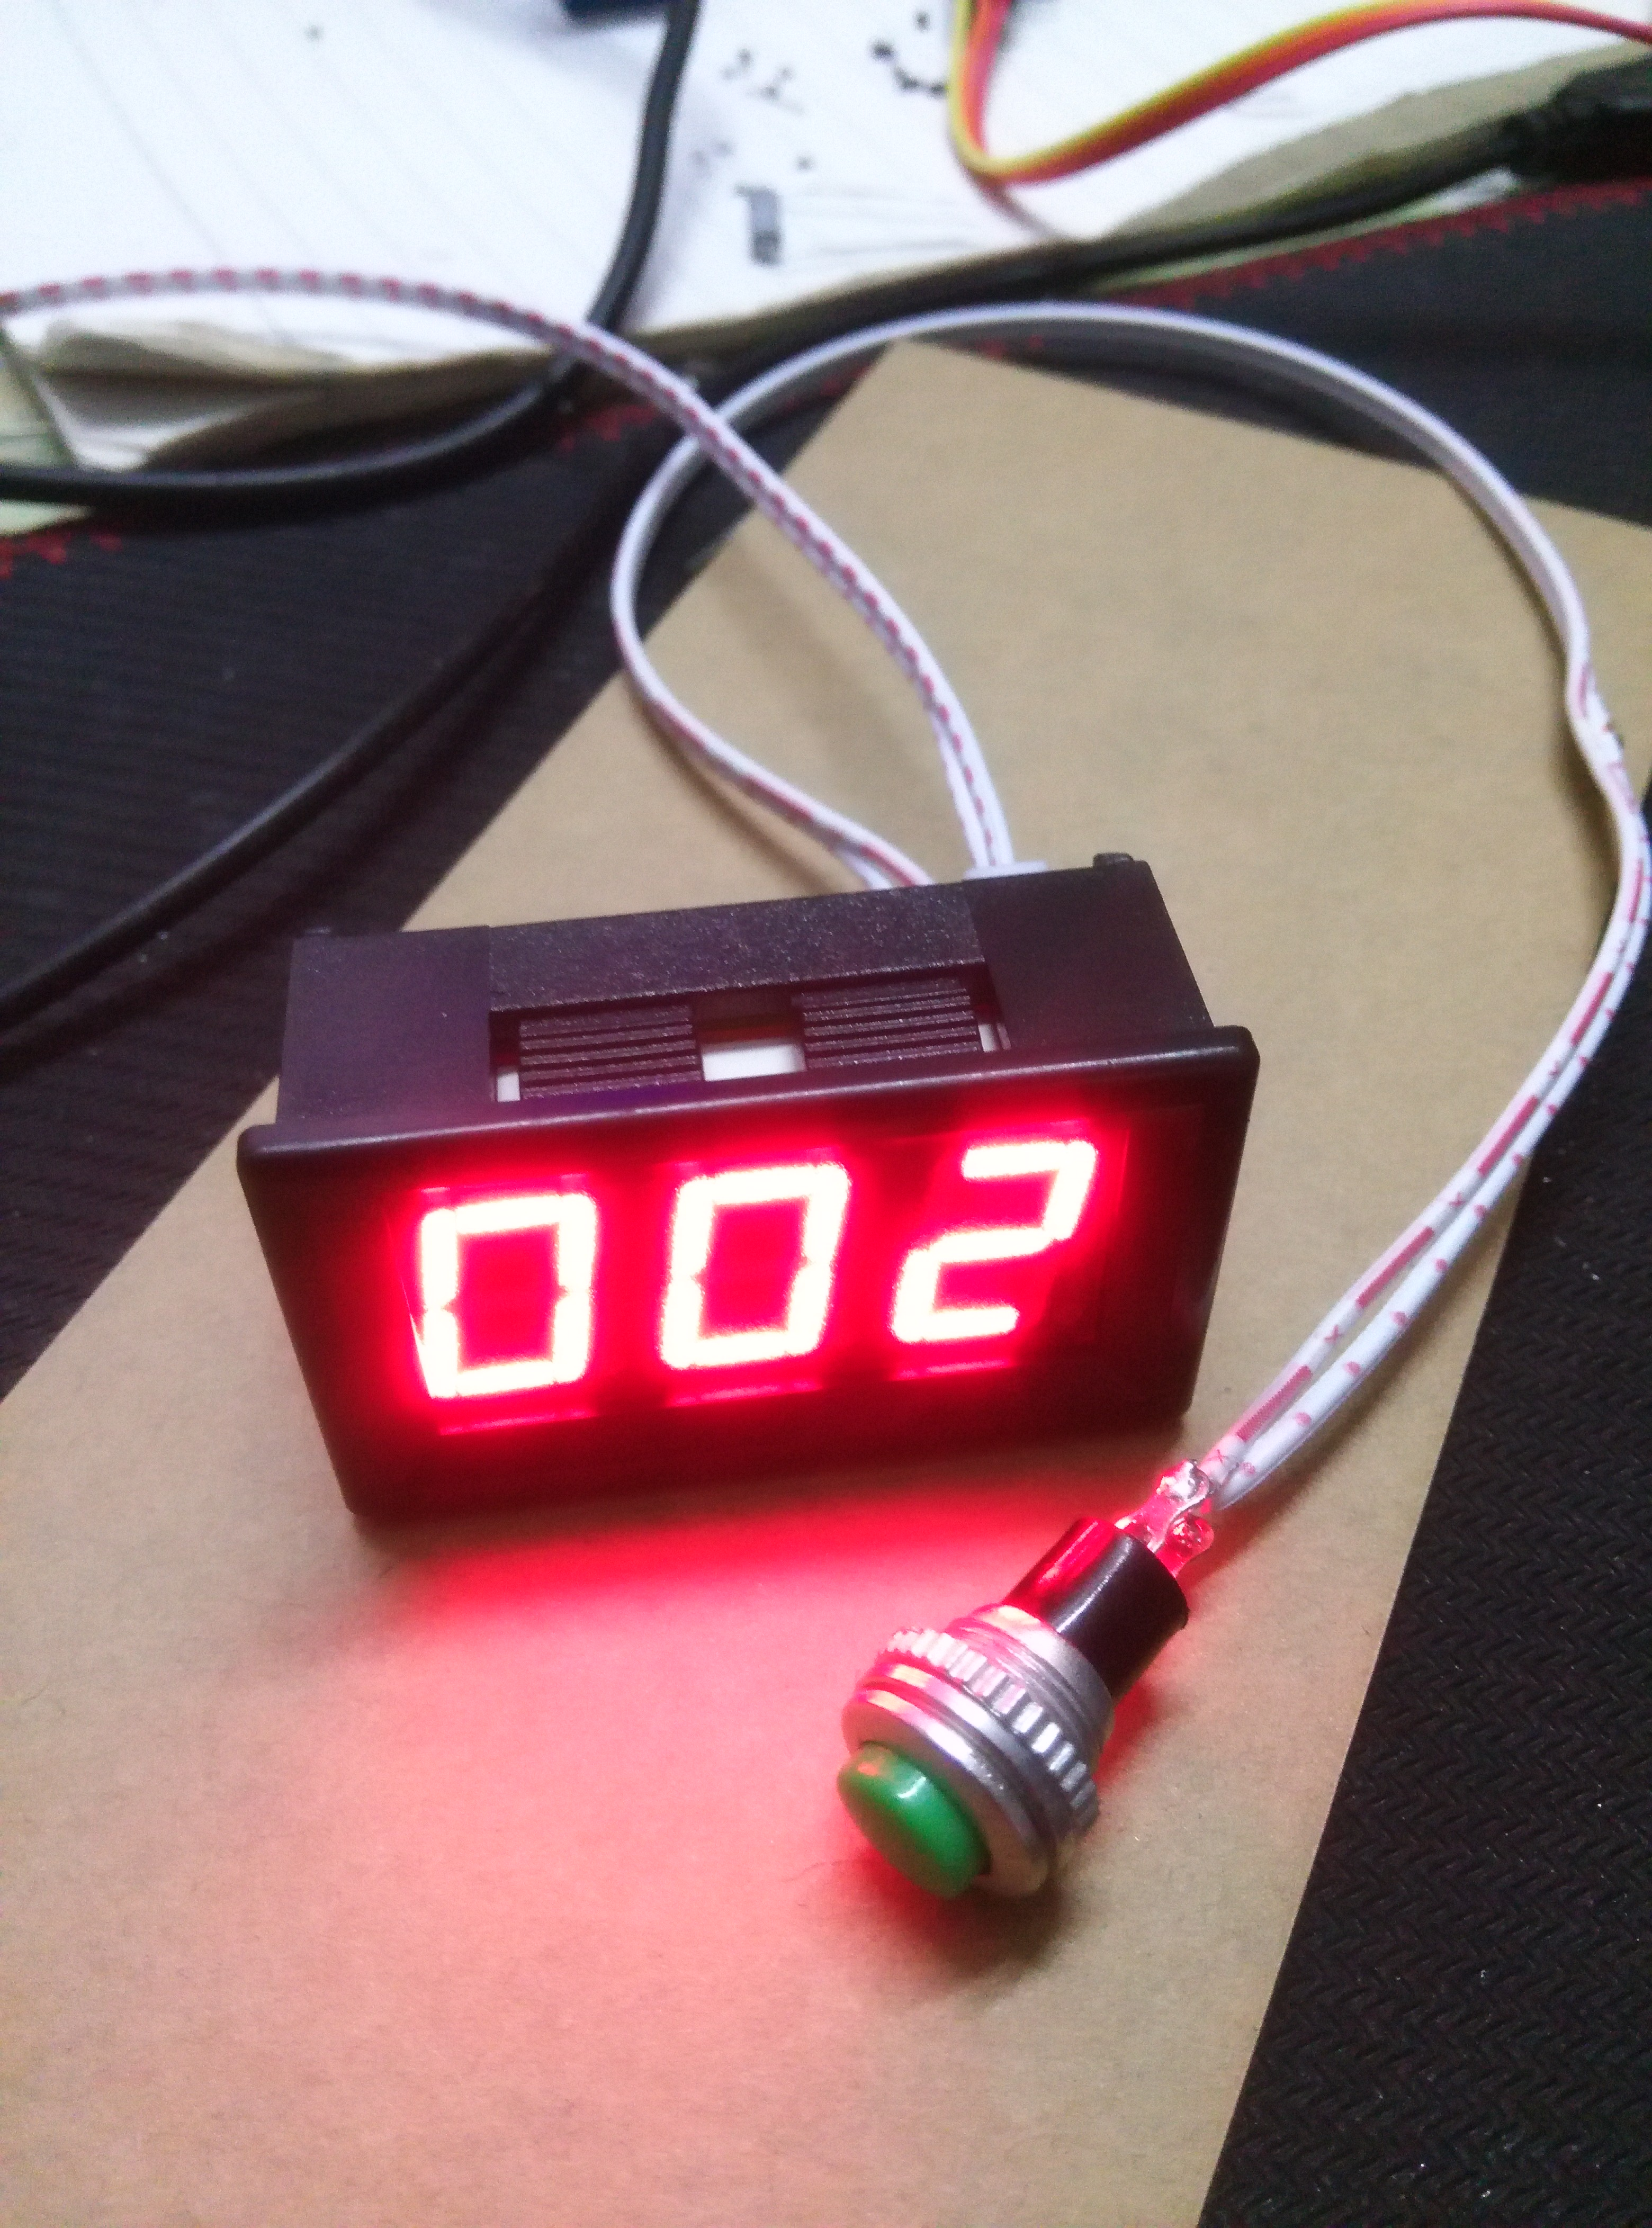 Electronic Counter /3 Bit 0.56 Digital Tube Display Gauge Head/pulse Count/packing Line Count